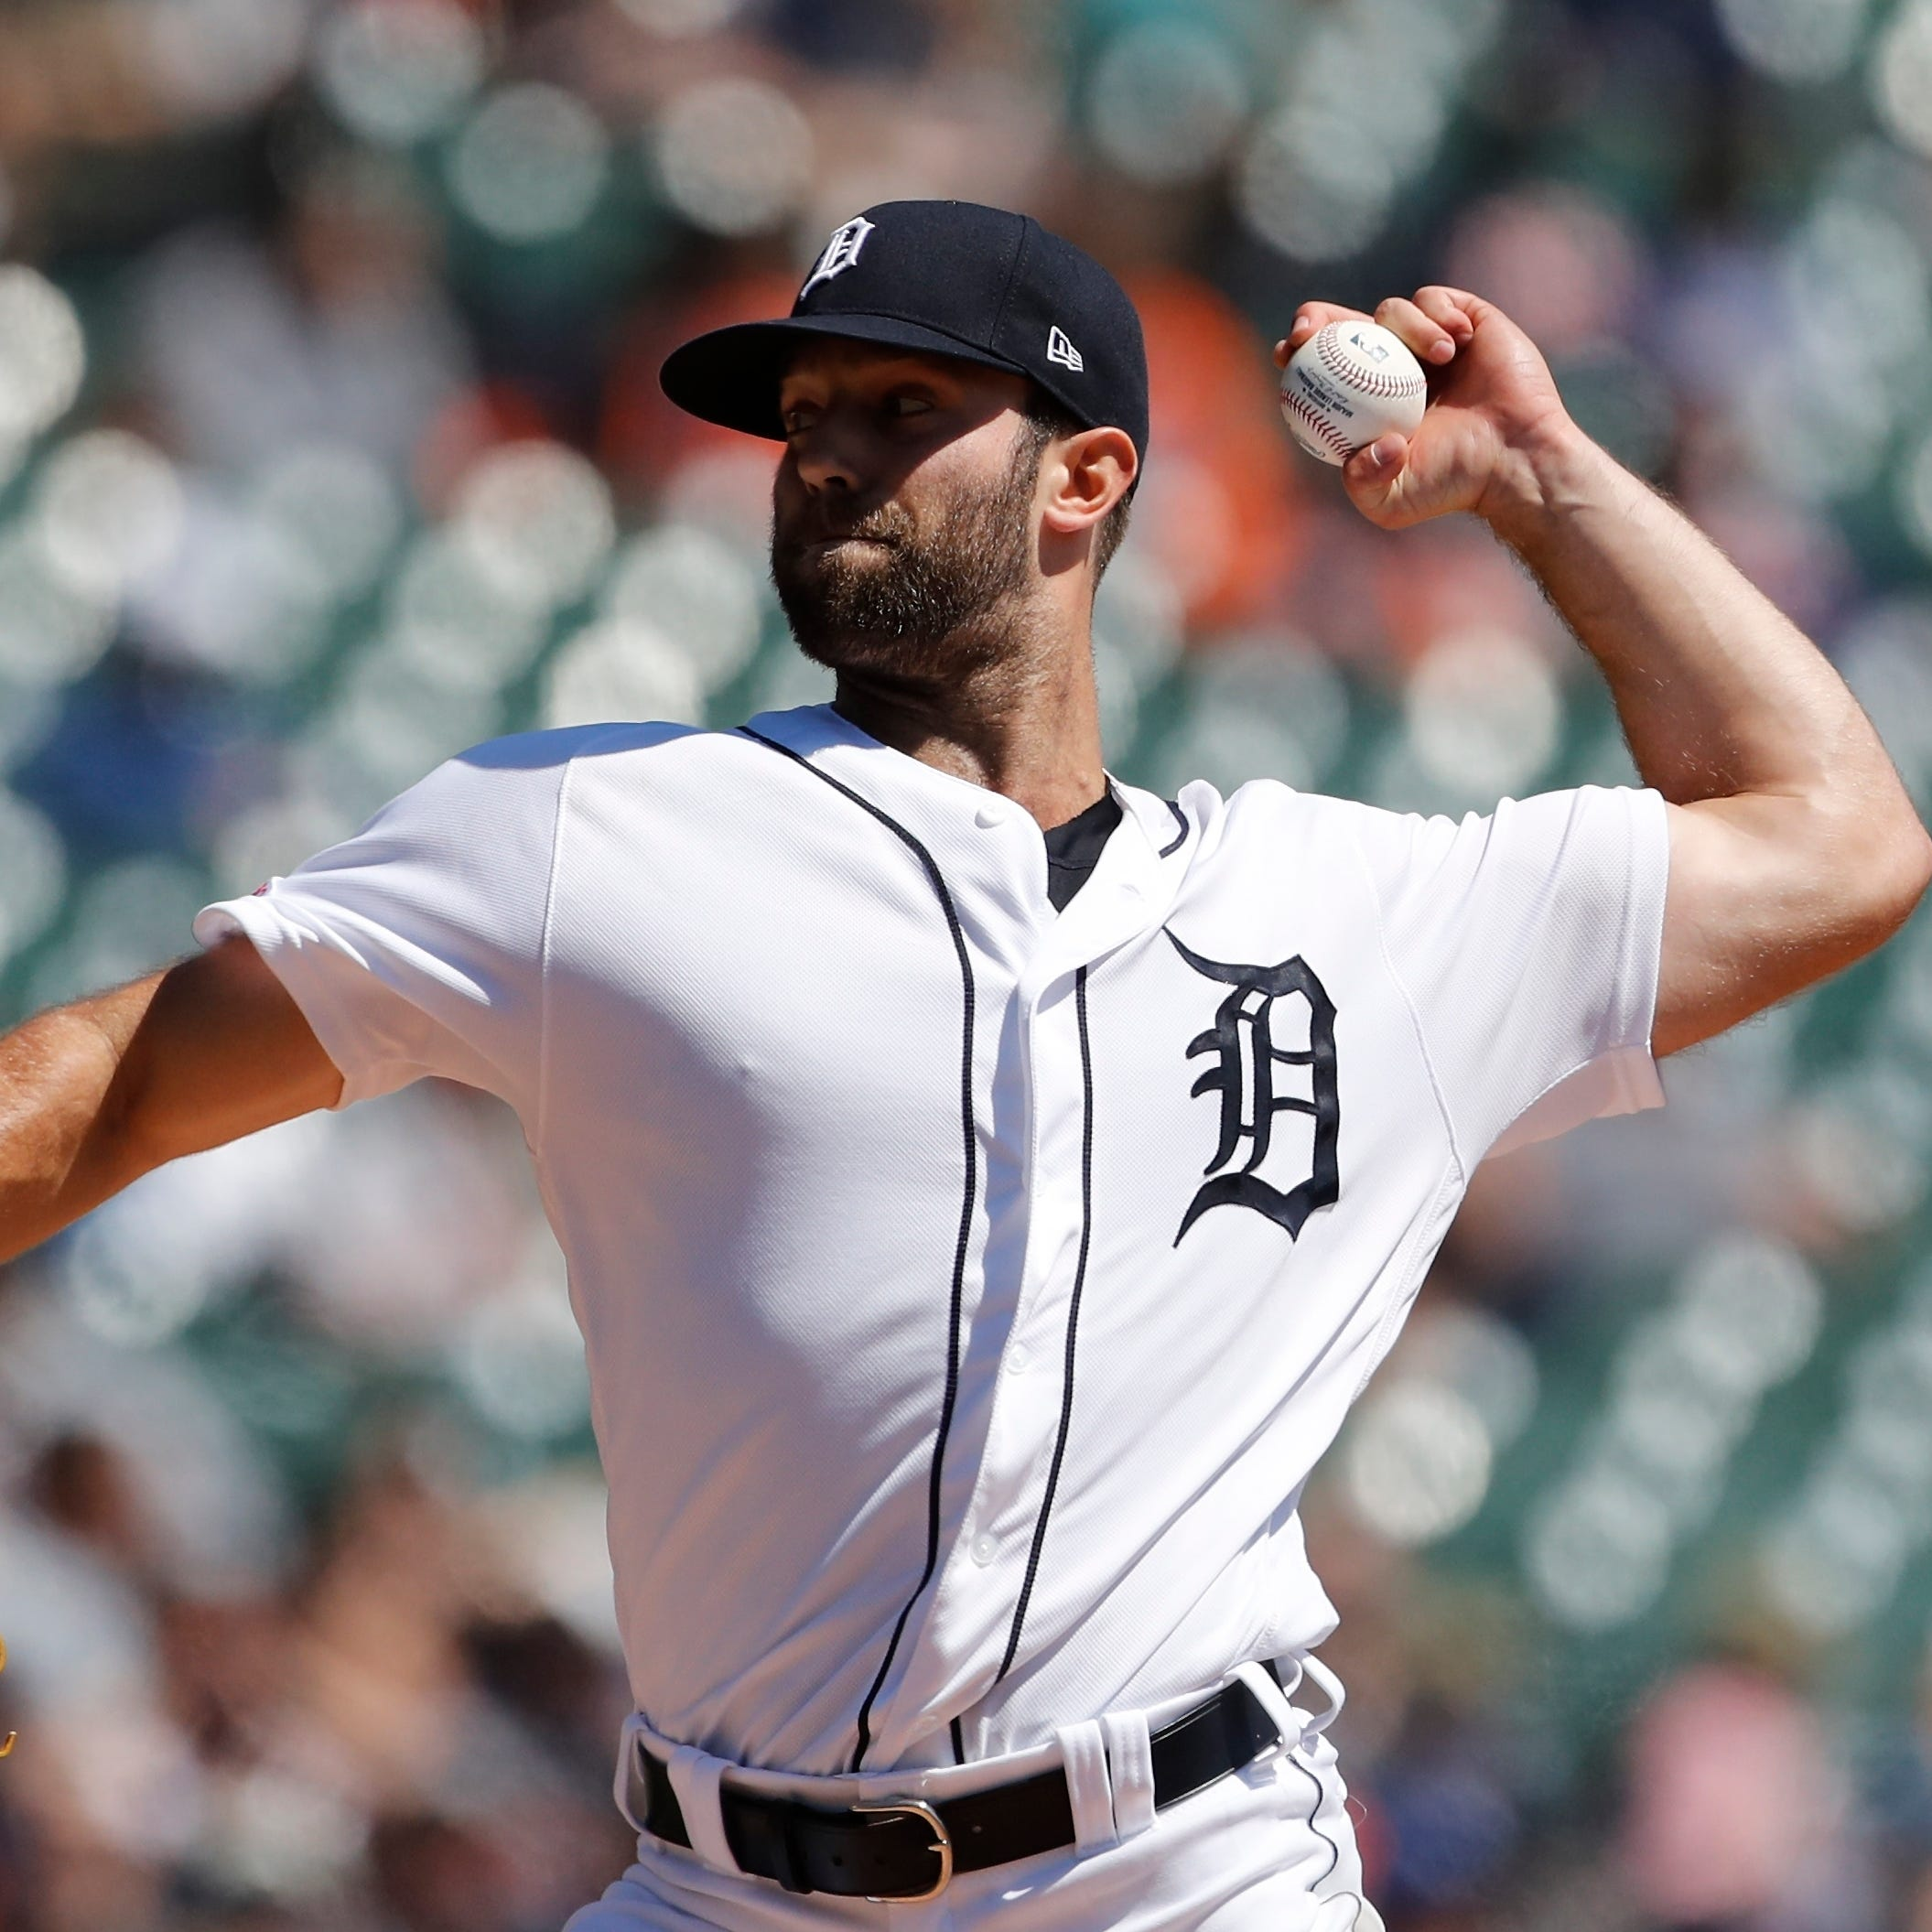 'Step in the right direction:' Daniel Norris shines in first start, Tigers trip White Sox